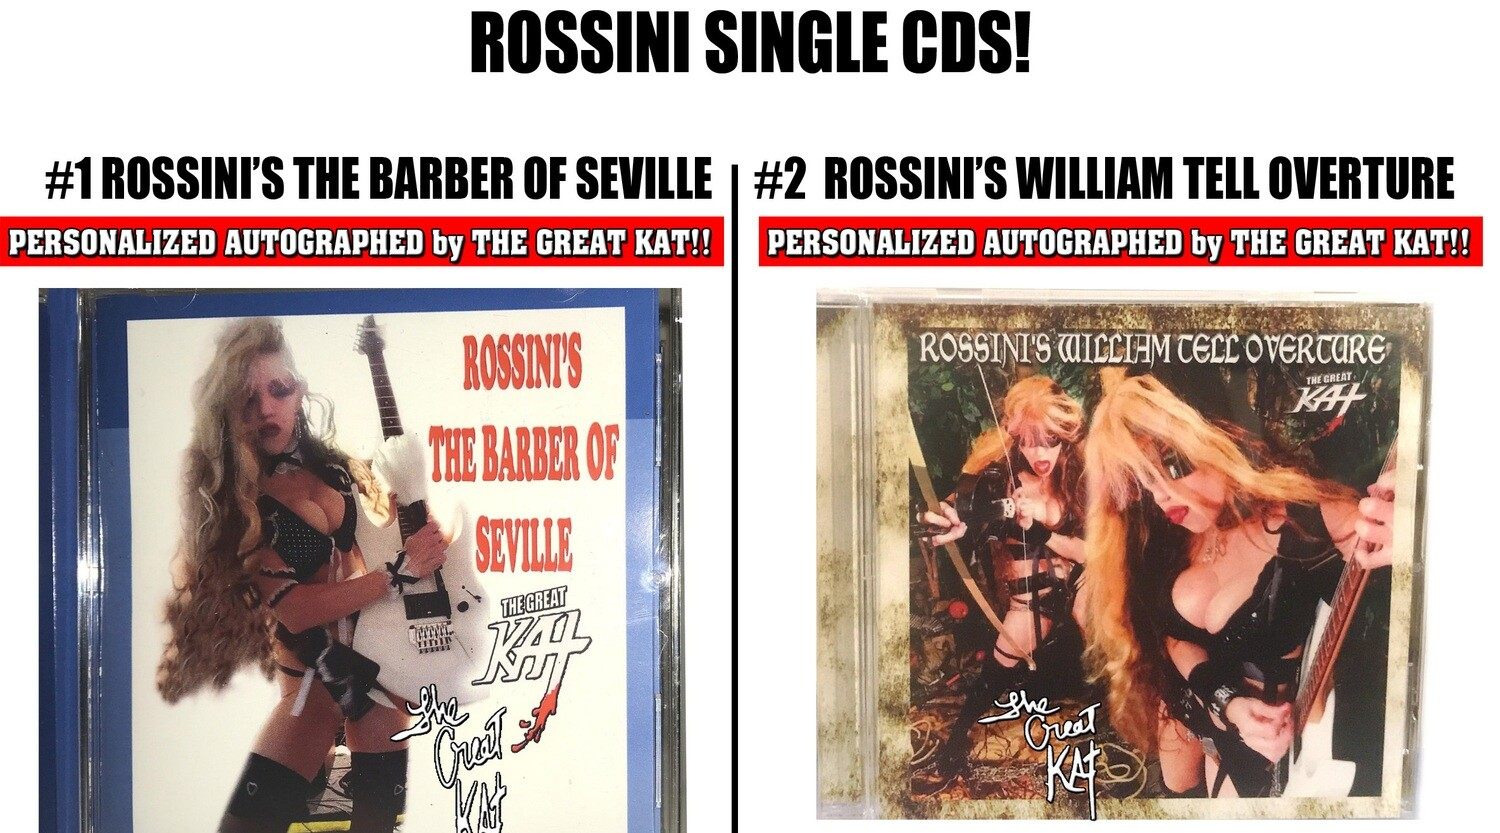 ROSSINI SINGLE CDS: Choose ROSSINI'S THE BARBER OF SEVILLE SINGLE Music CD (2:12) or ROSSINI'S WILLIAM TELL OVERTURE SINGLE Music CD (1:54)! PERSONALIZED SIGNED by GREAT KAT-Signed to Customer's Name